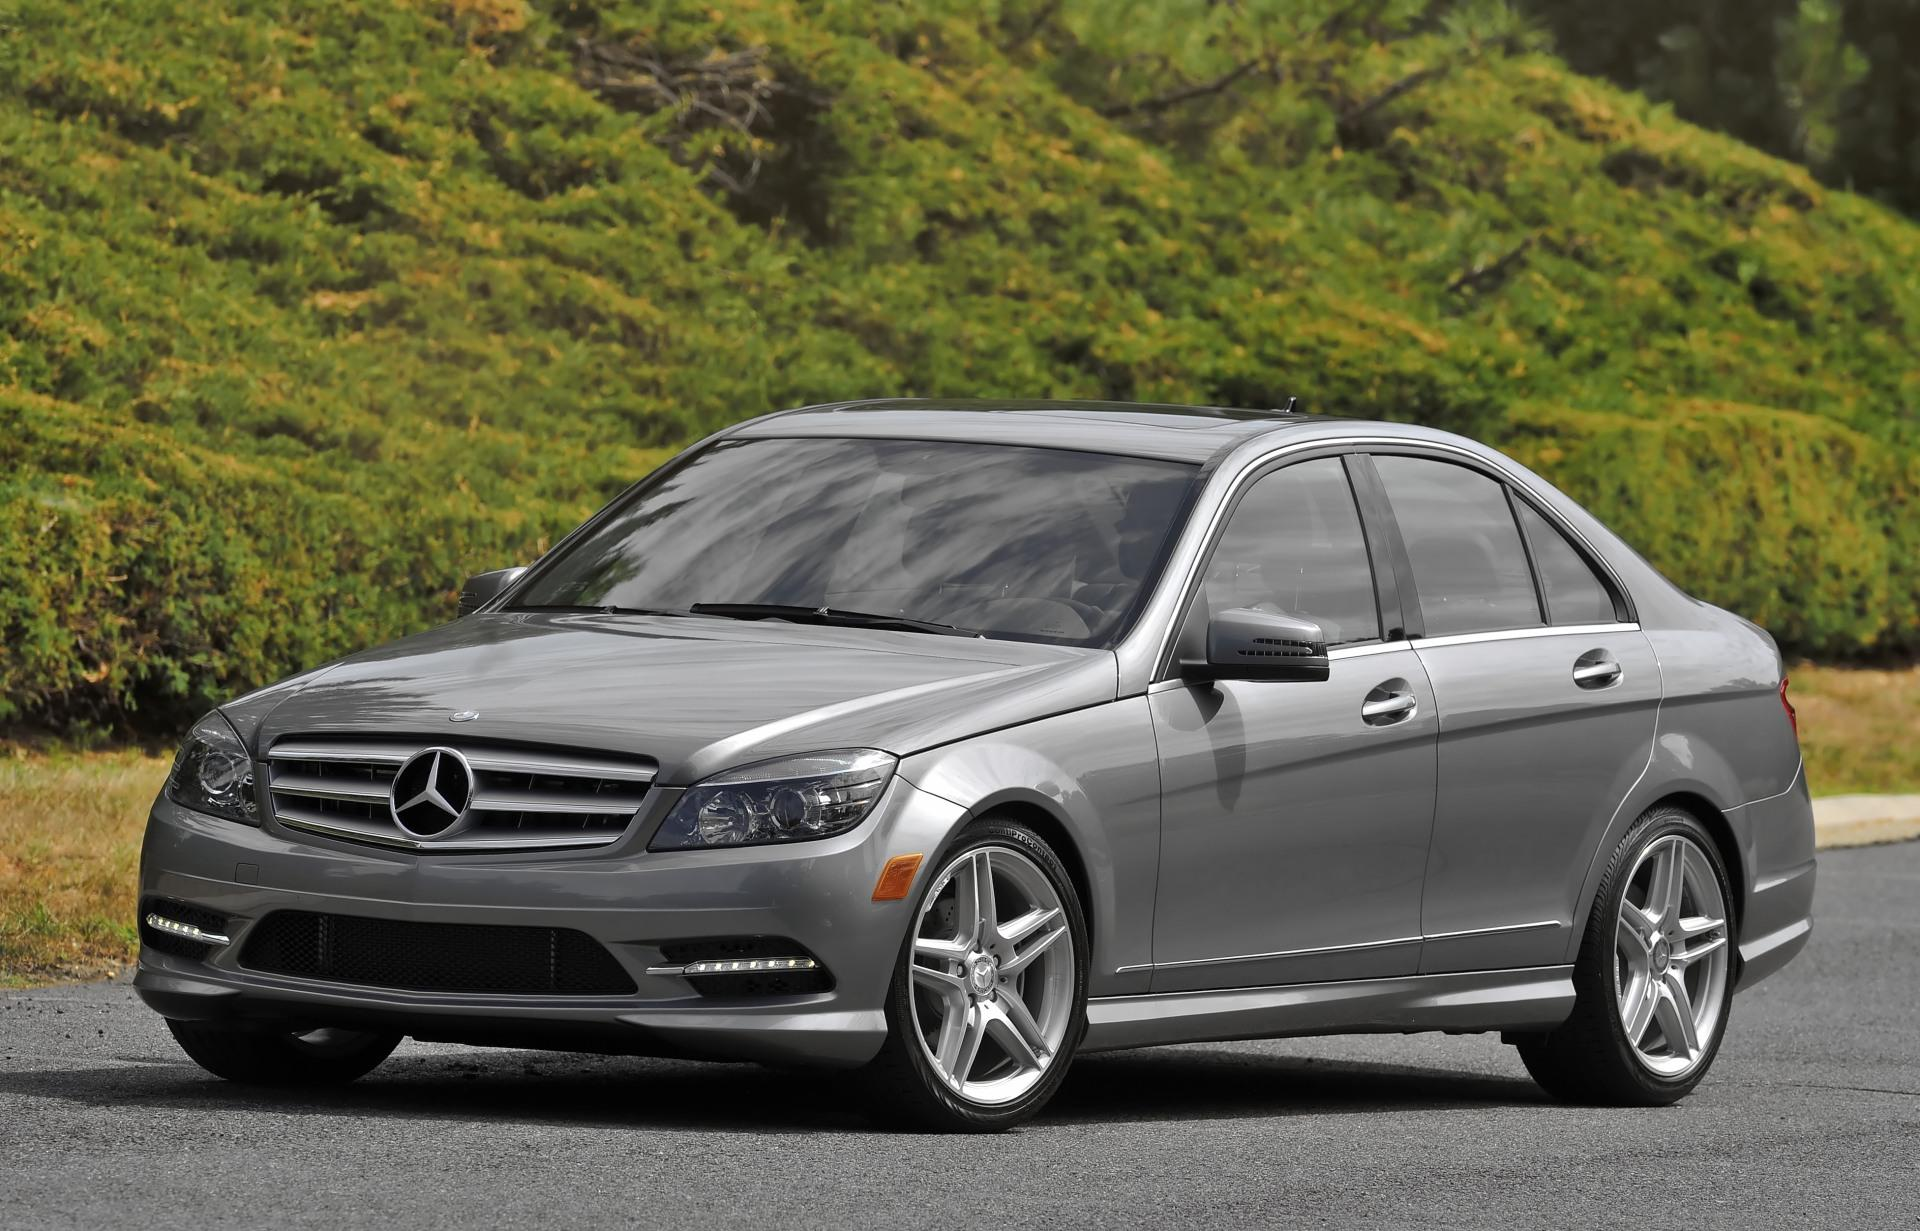 2011 mercedes benz c class information and photos for Mercedes benz c300 for sale 2011